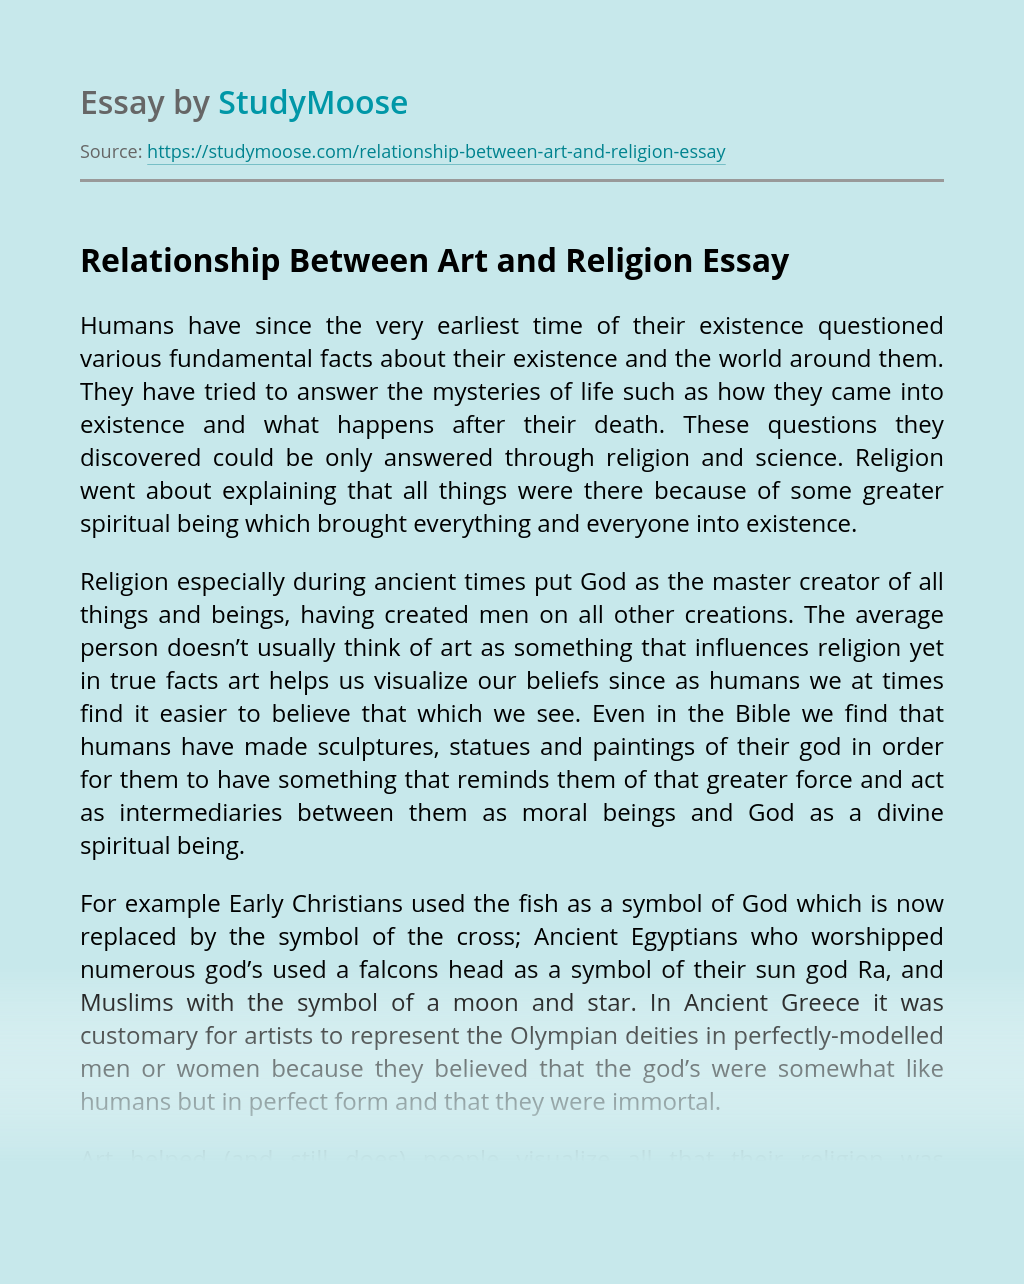 Relationship Between Art and Religion